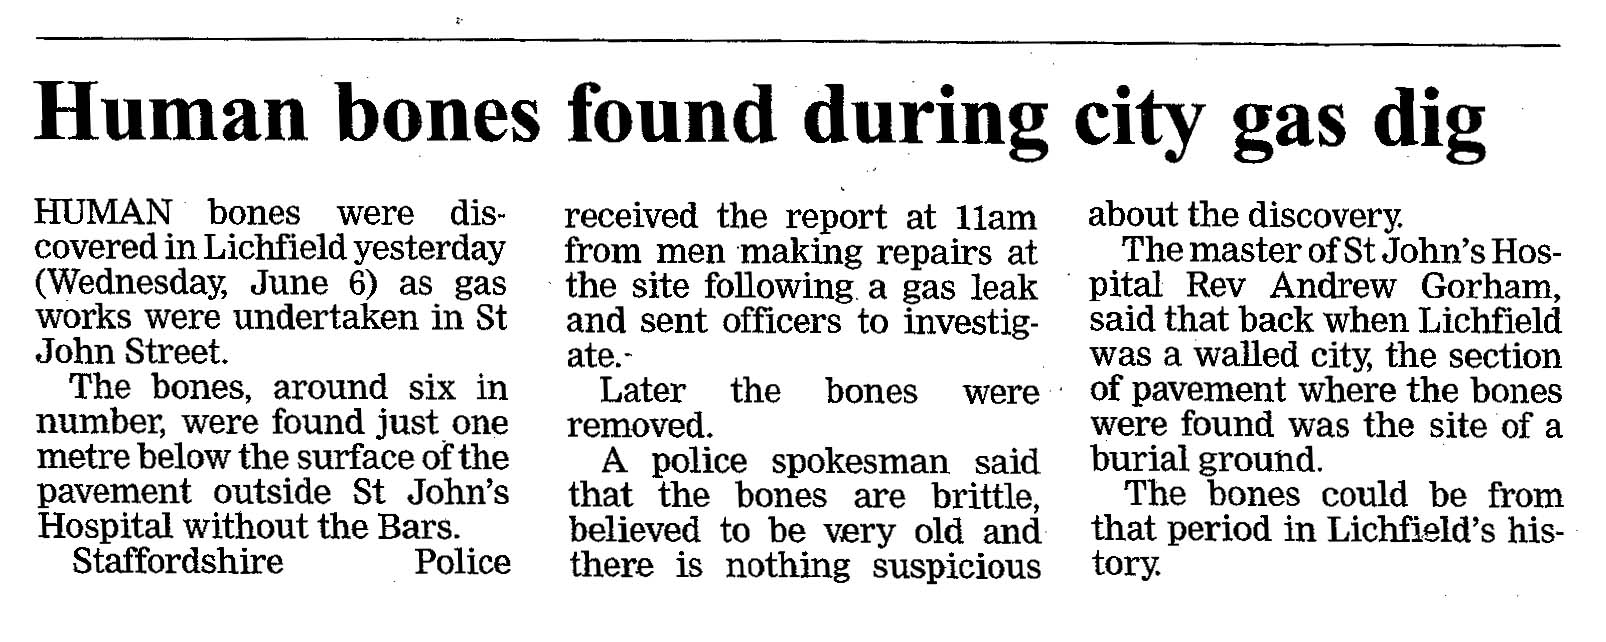 Human bones found during city gas dig